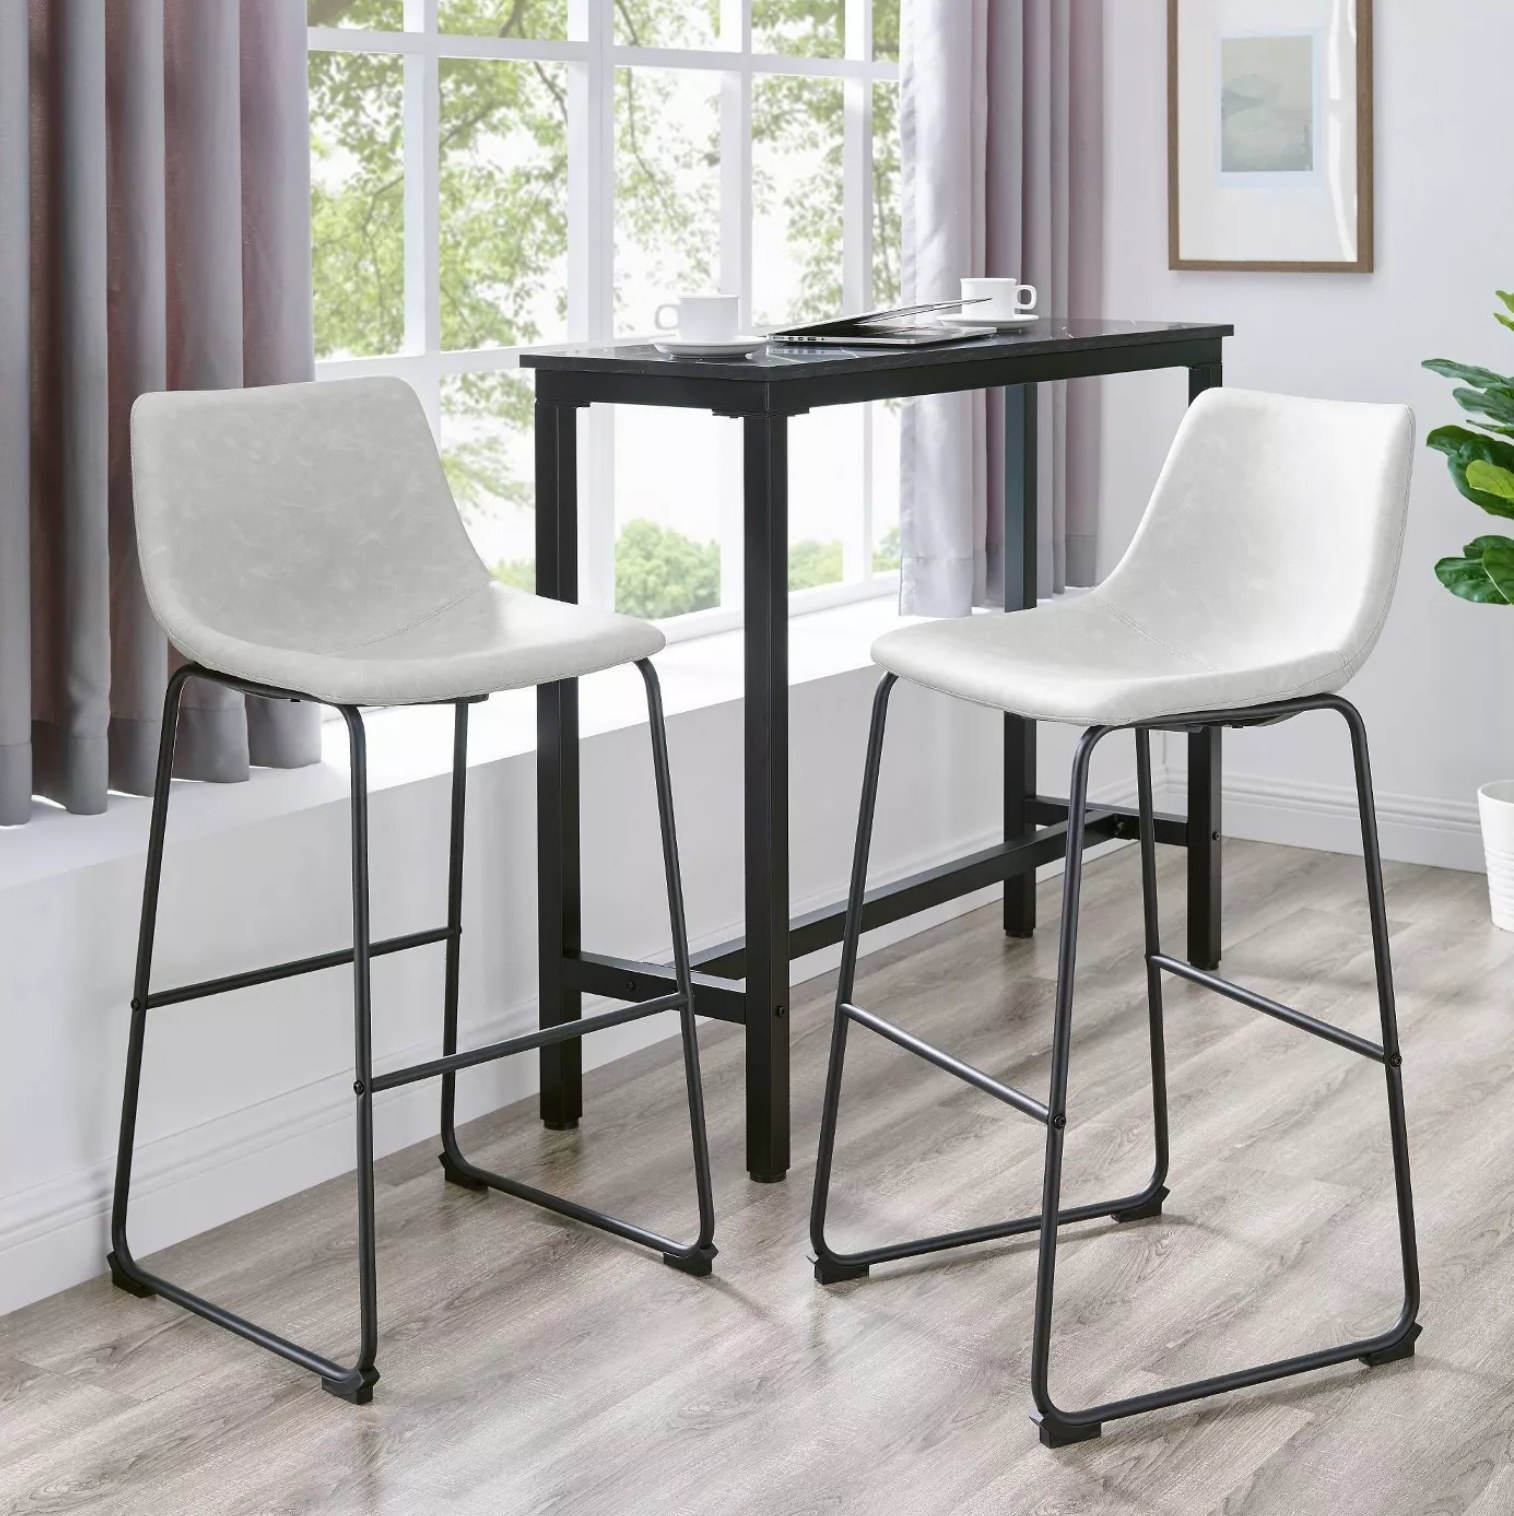 The gray stools by a black table